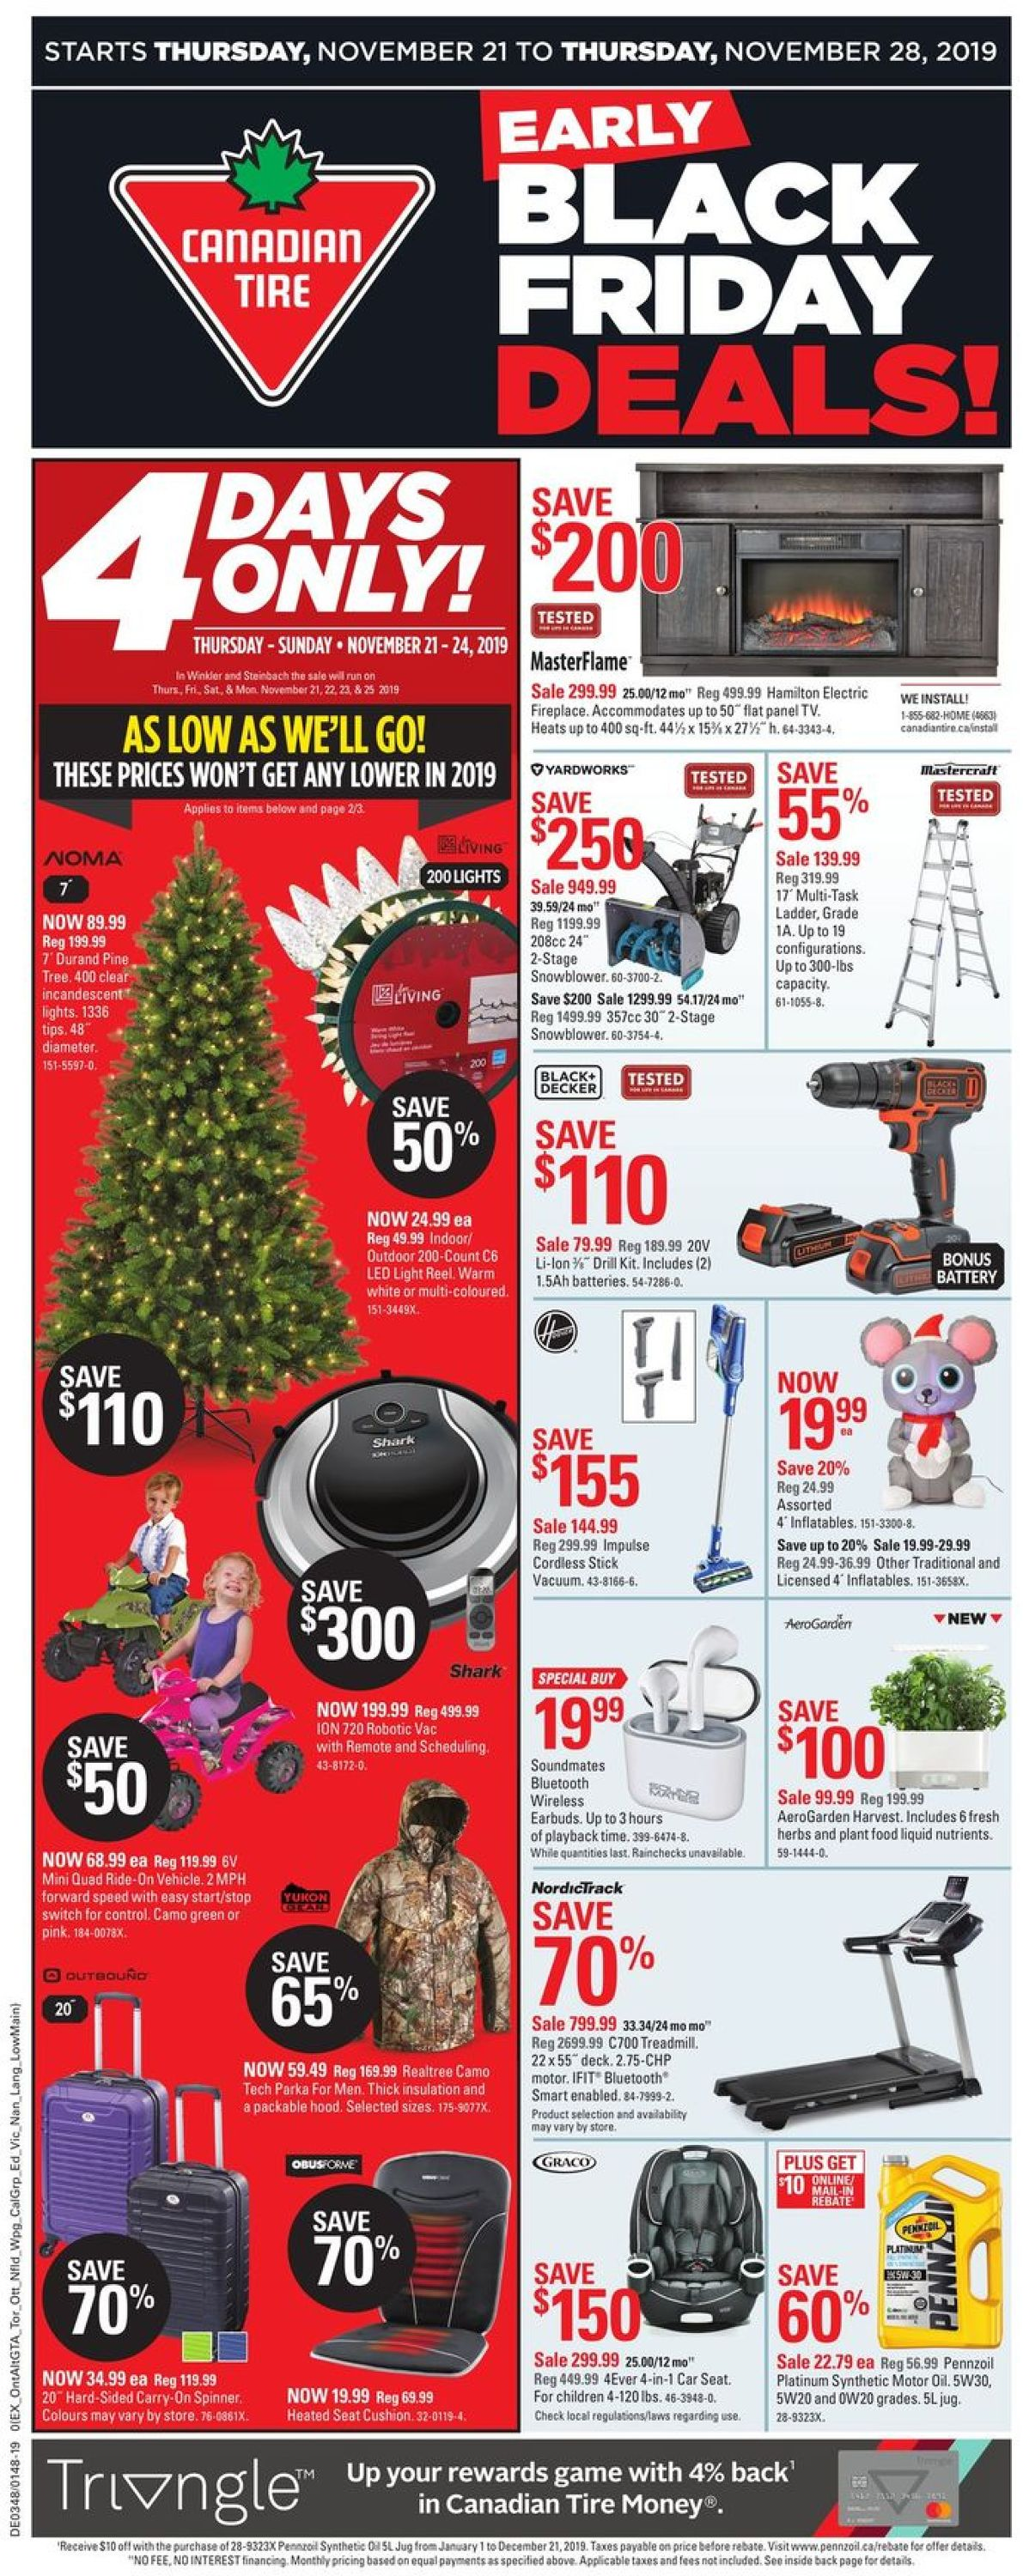 Canadian Tire EARLY BLACK FRIDAY DEALS 2019 Flyer - 11/21-11/28/2019